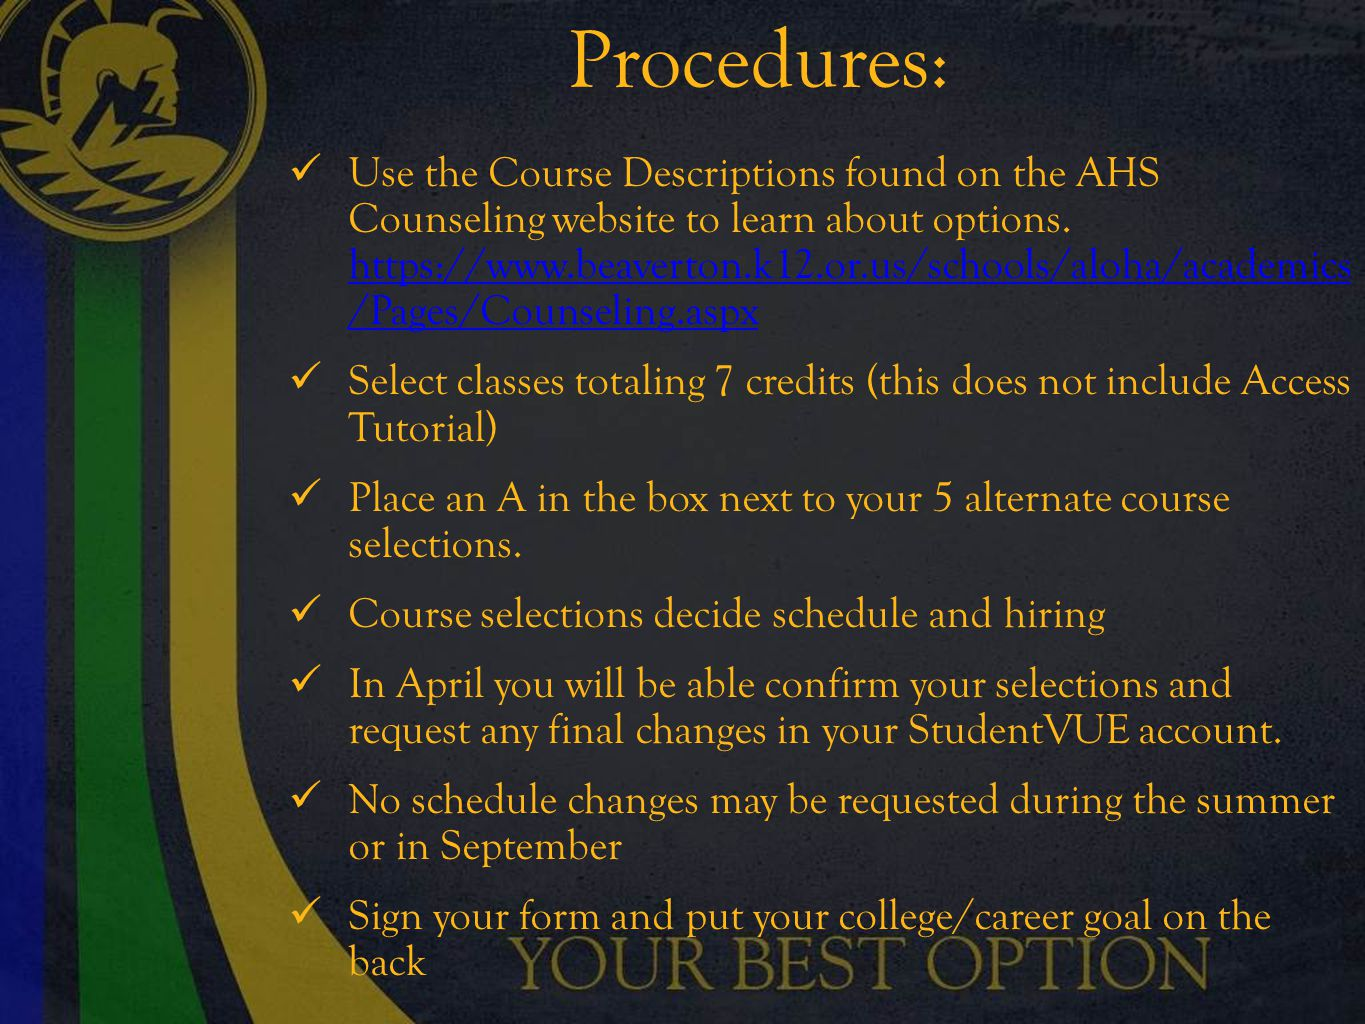 Procedures: Use the Course Descriptions found on the AHS Counseling website to learn about options.